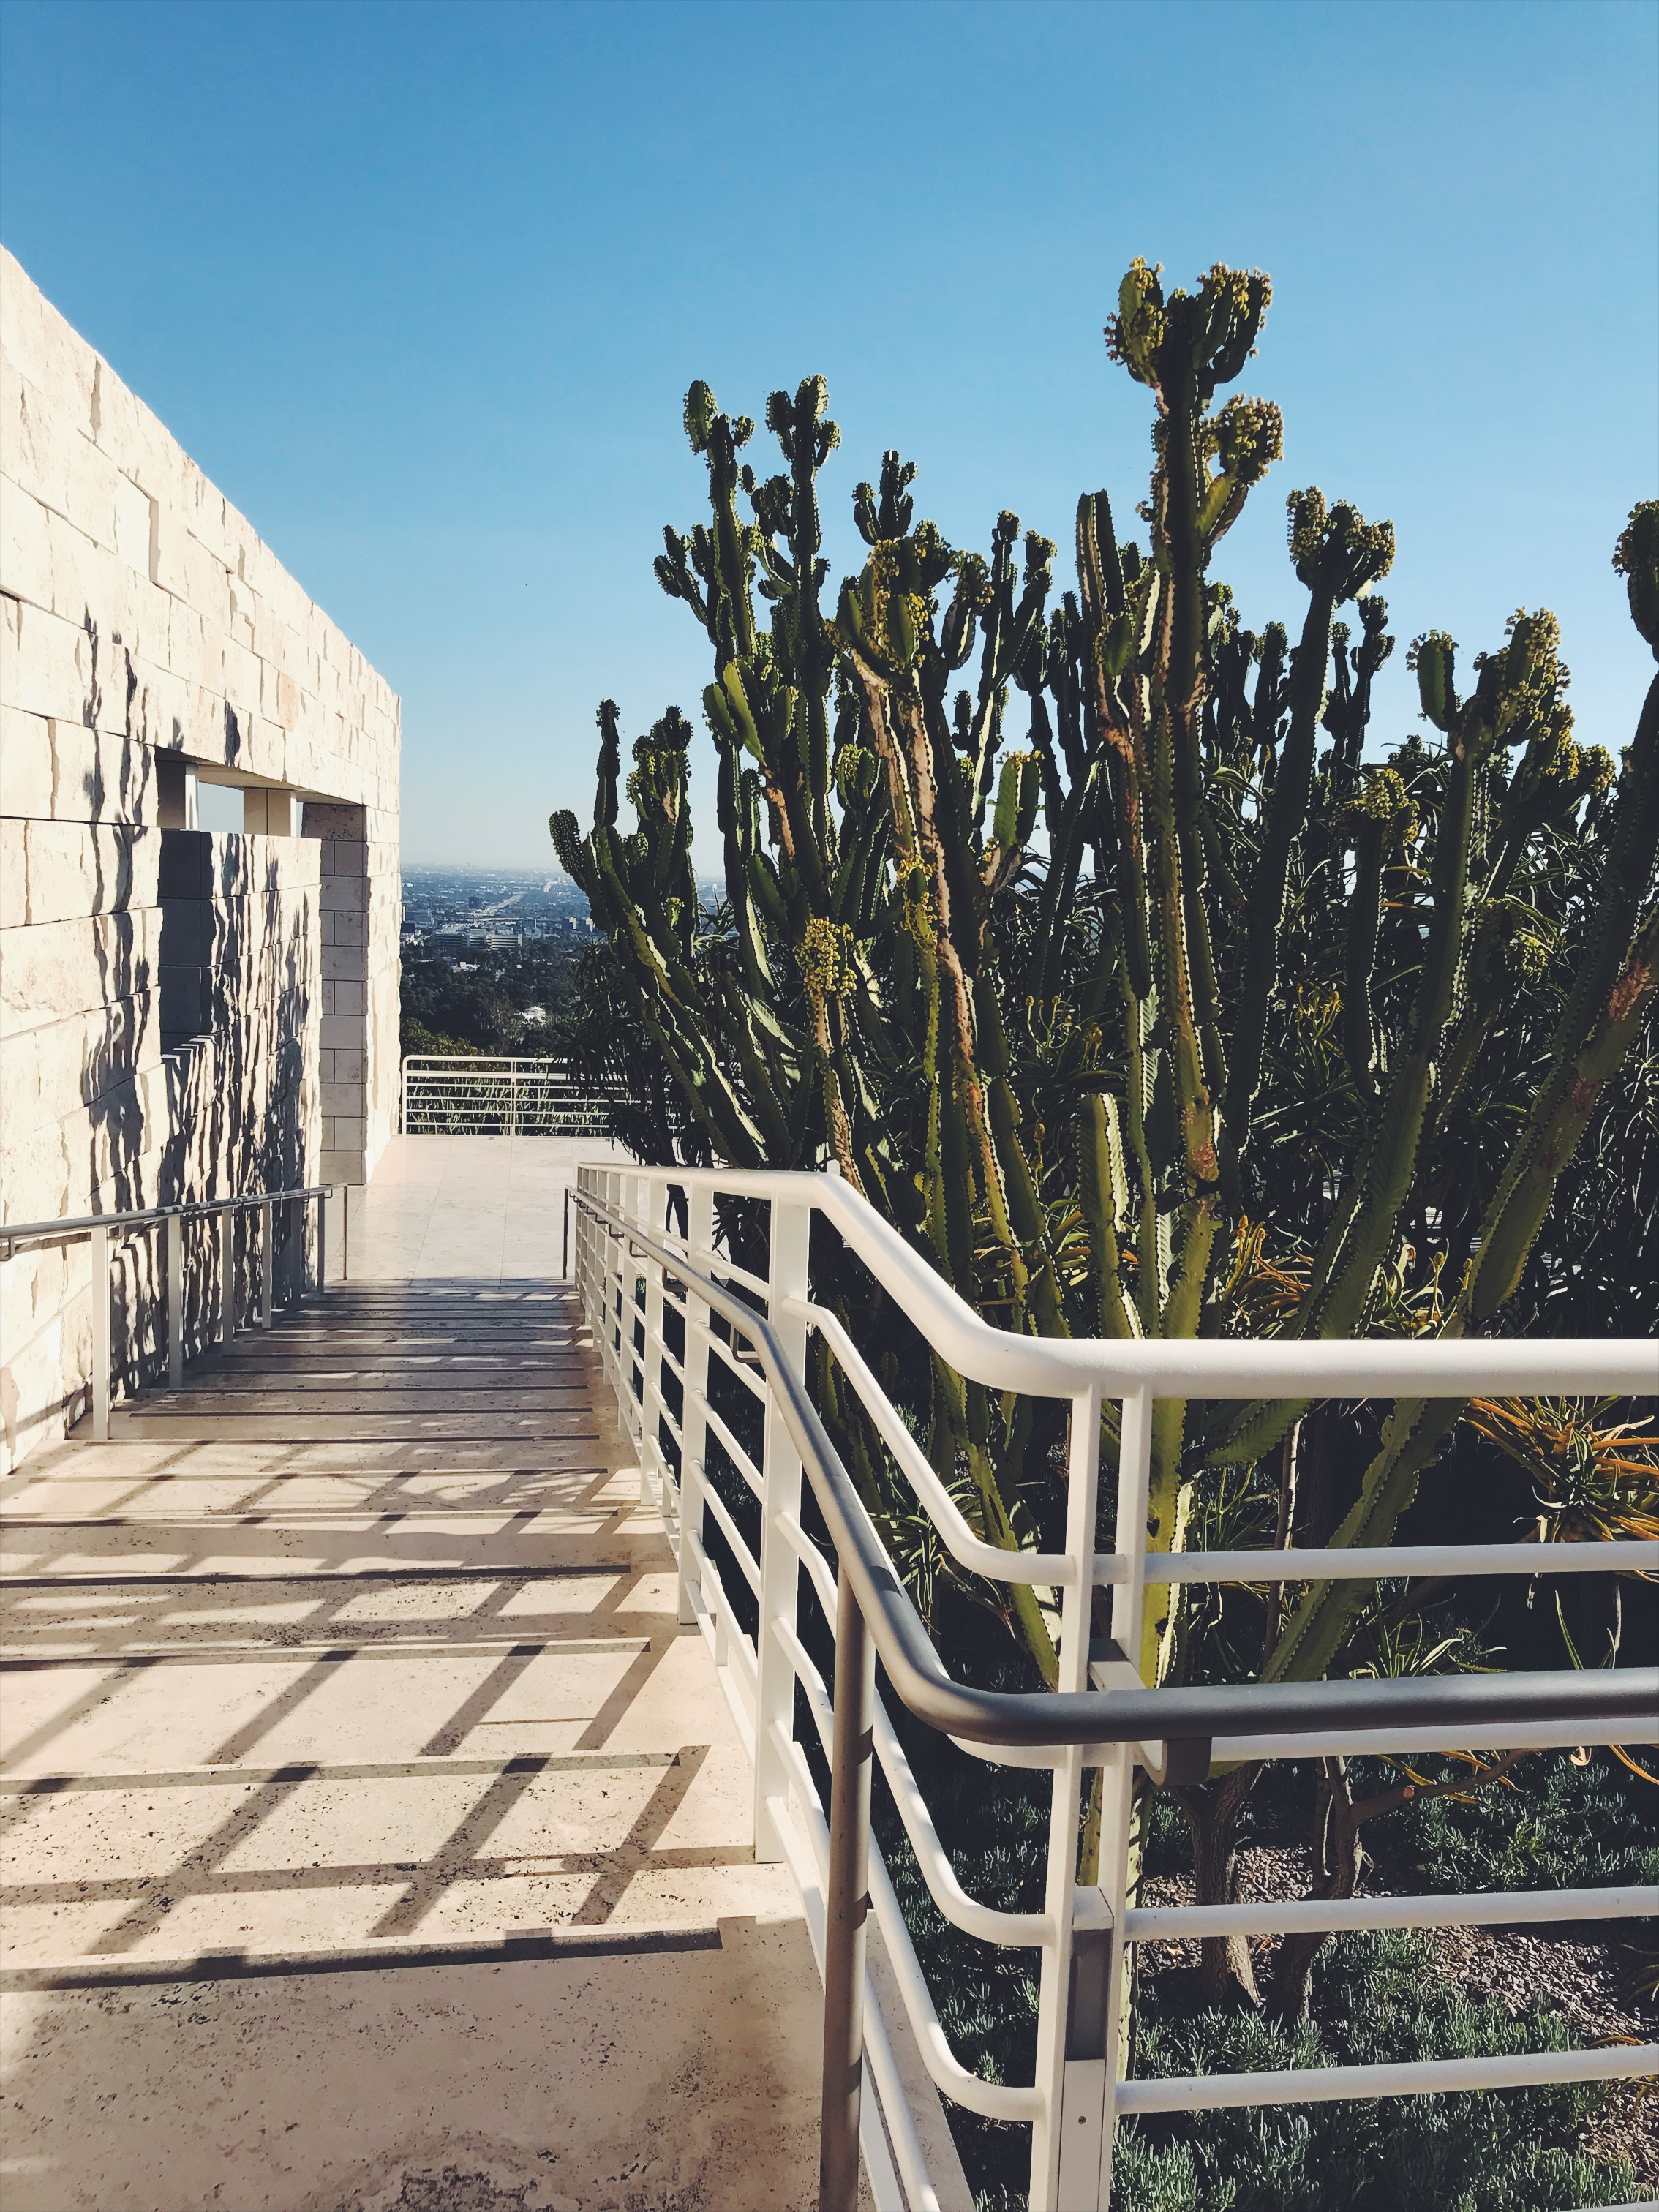 The Getty grounds